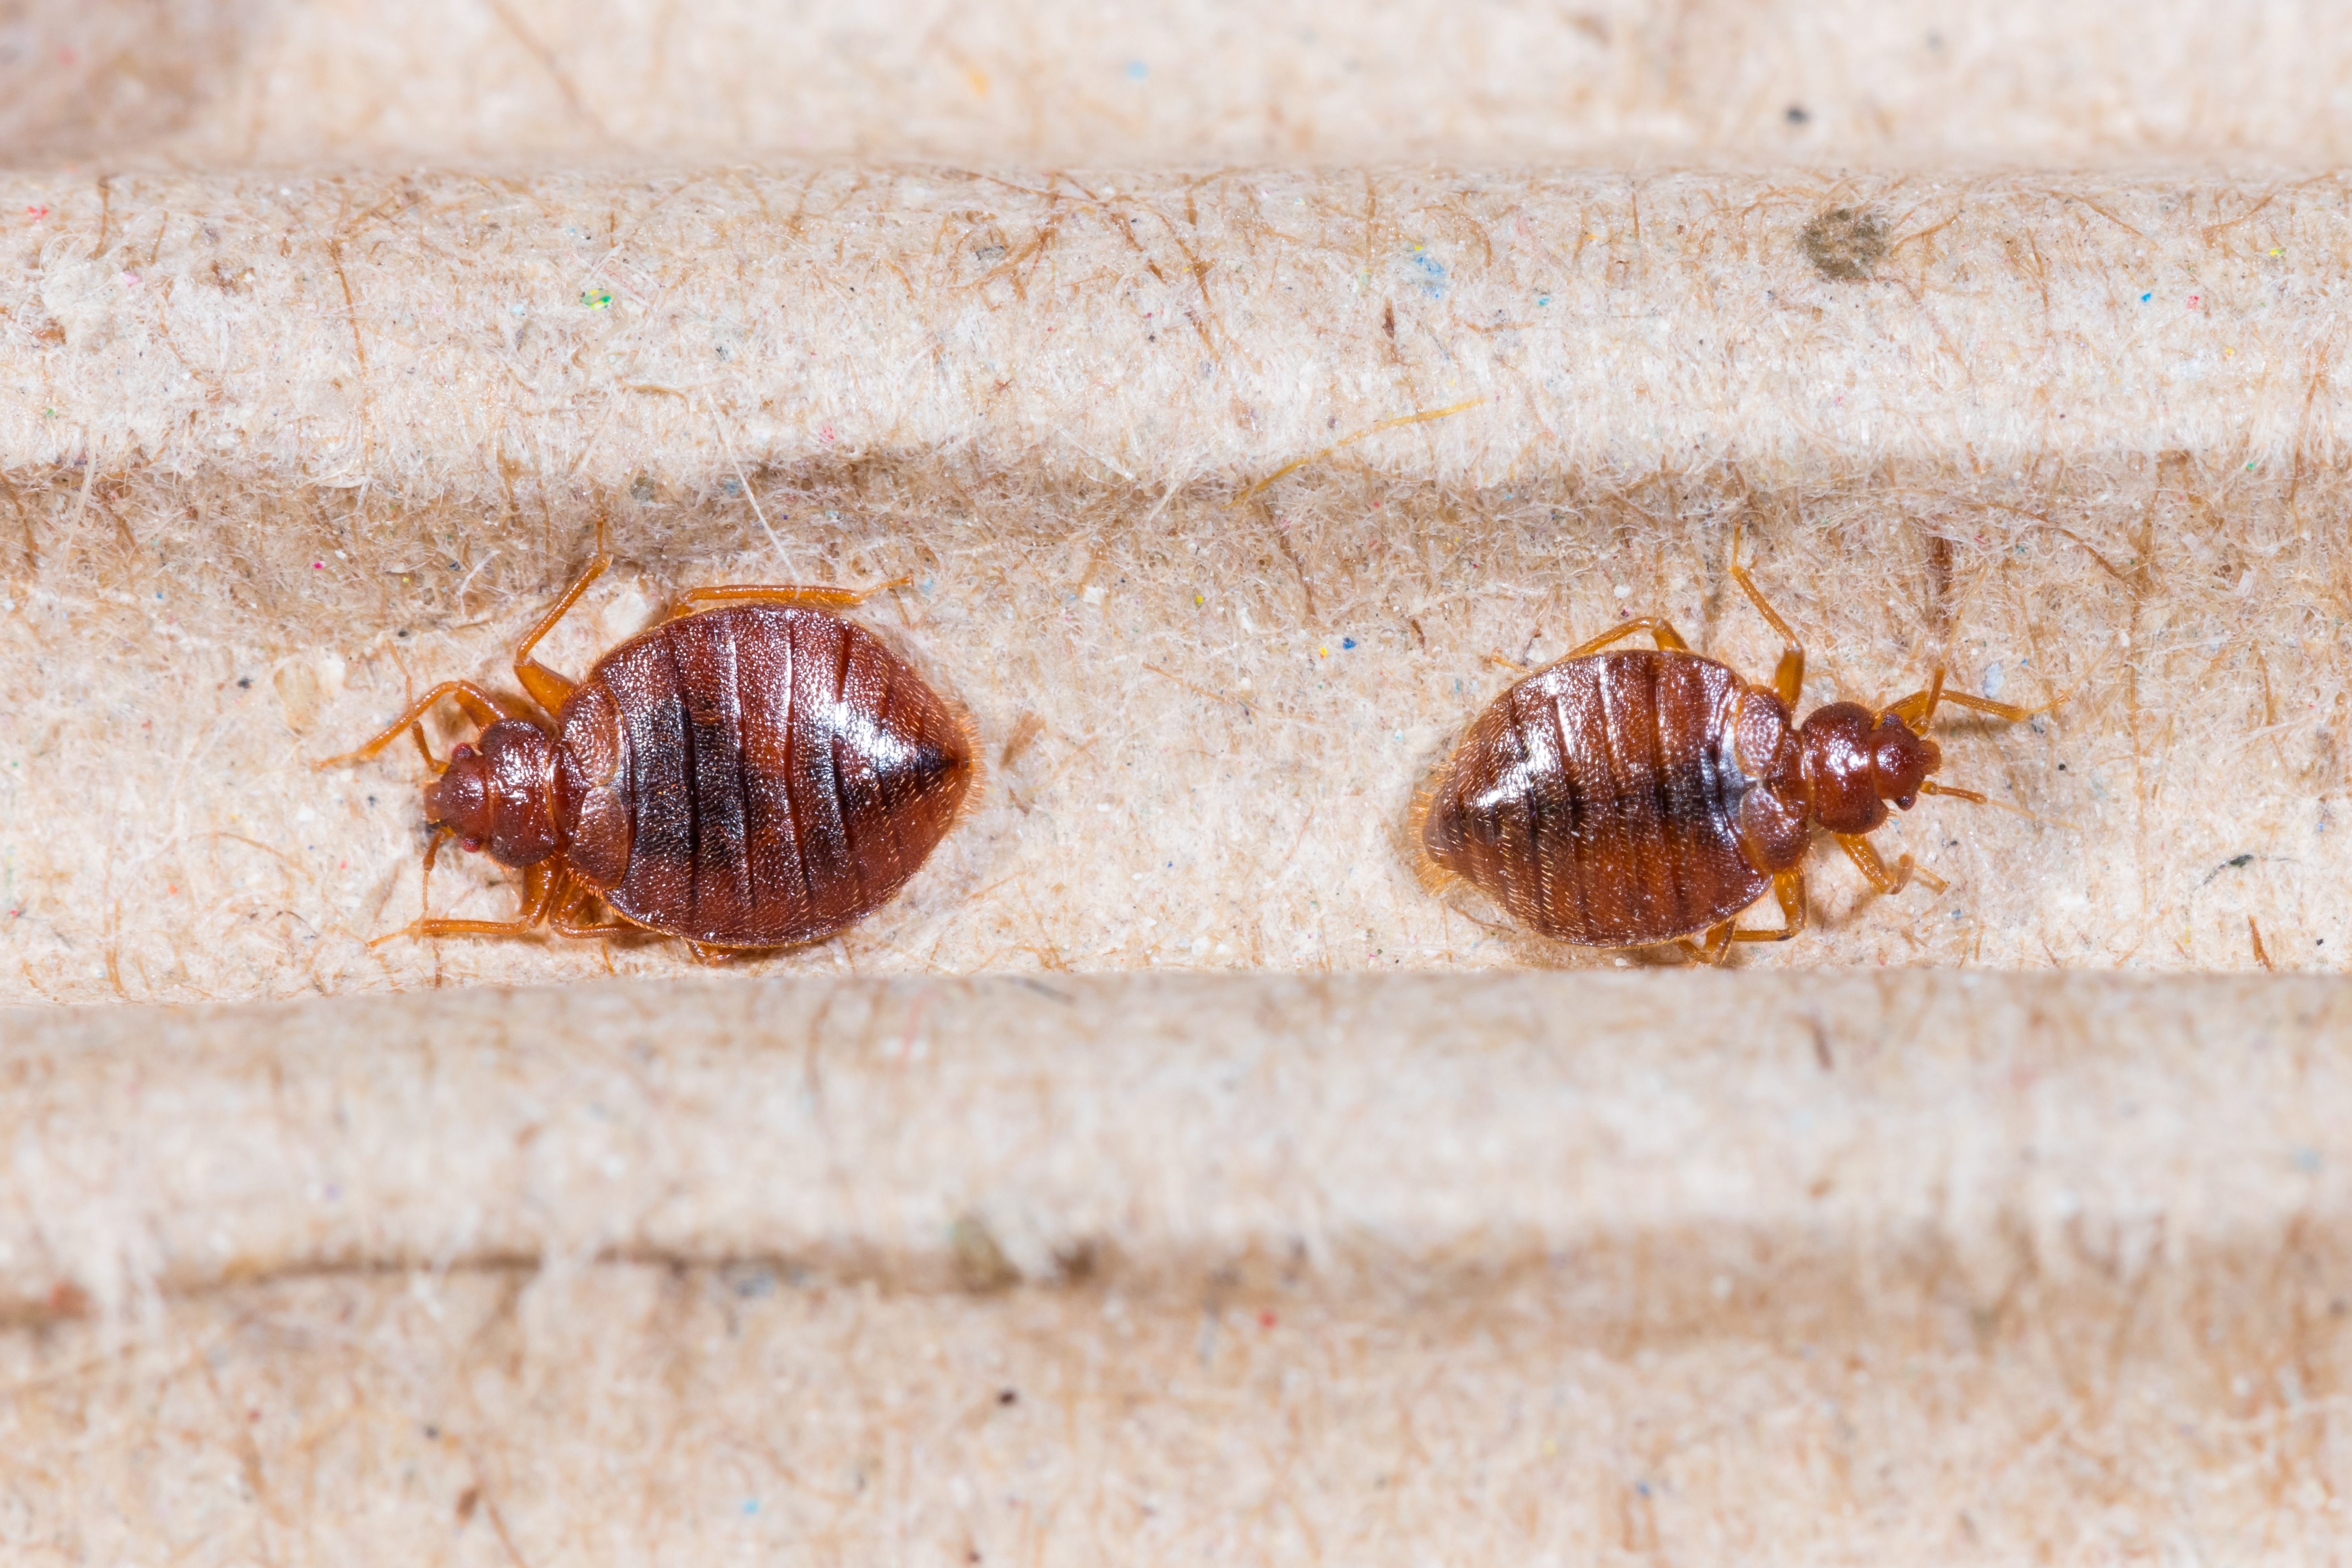 Thatu0027s Key If You Want To Avoid The Possibility Of Another Infestation. So,  How Effective Are Commercial Bed Bug Heaters? They May Be The Most  Effective ...